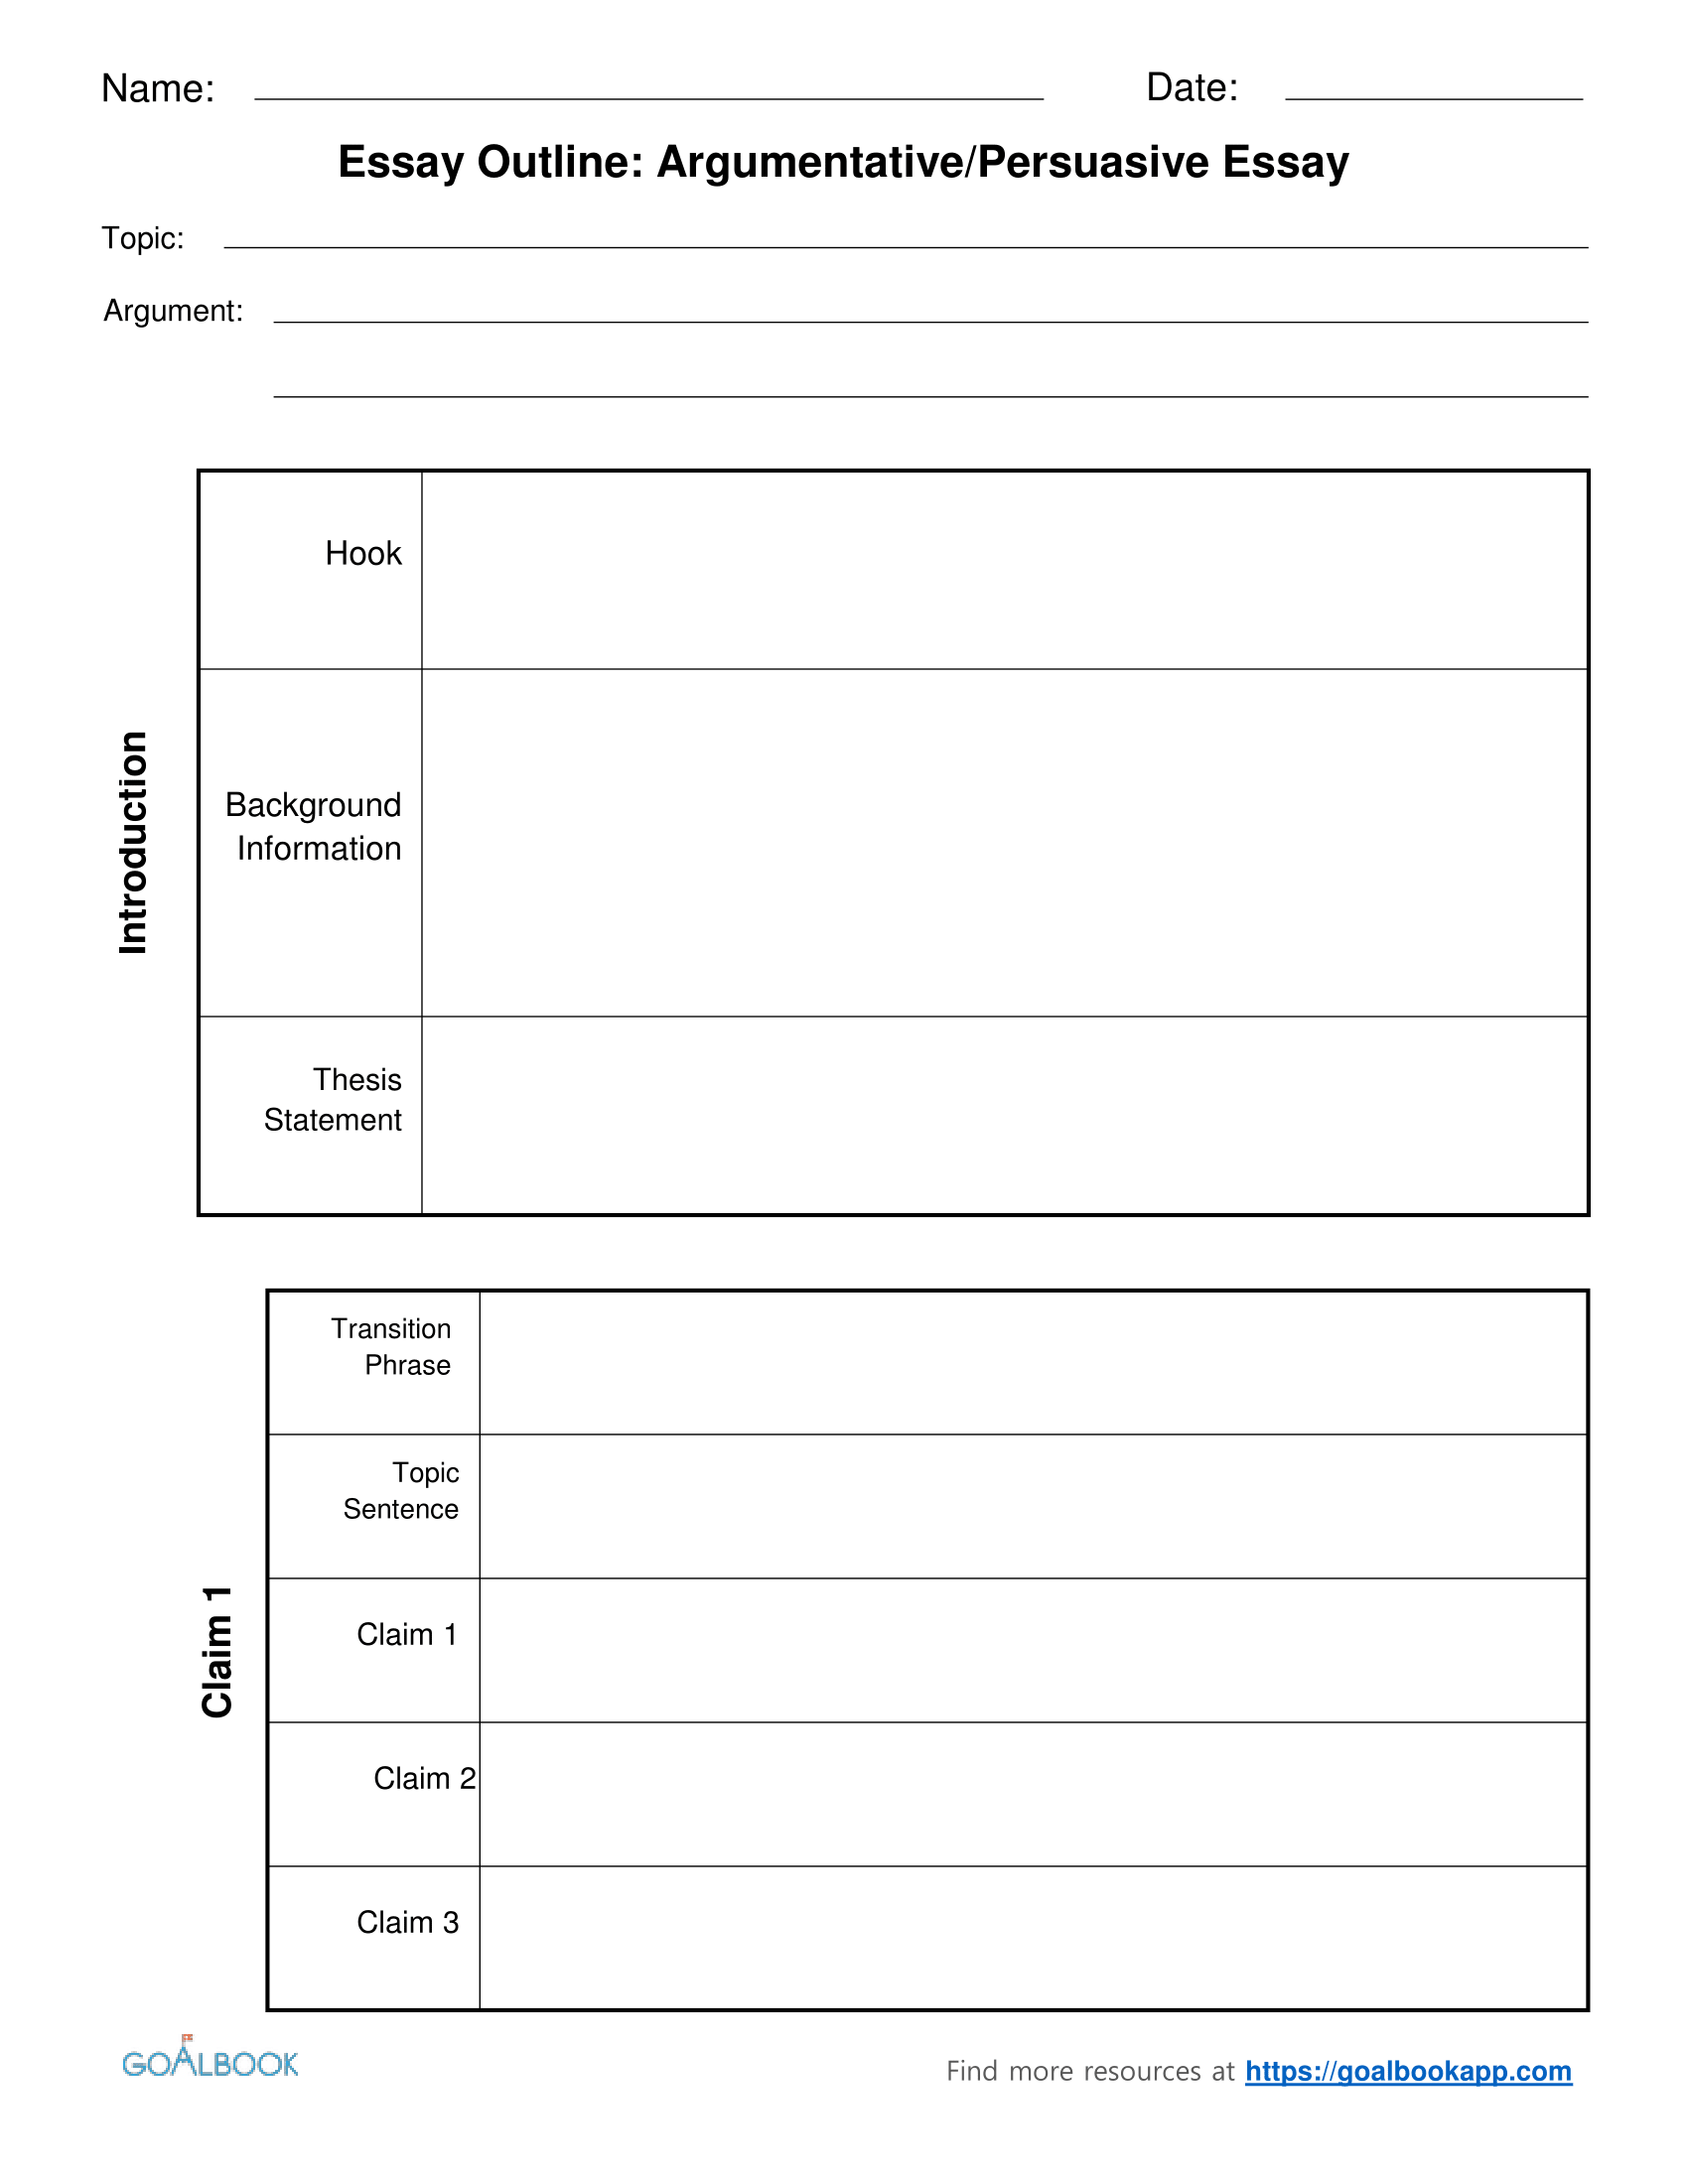 Essay On Importance Of Good Health  Cheap Essay Papers also Essay On Health Care Essay Lay Out Argument Essay Layout Essay Outline Format Pdf  Health Care Reform Essay